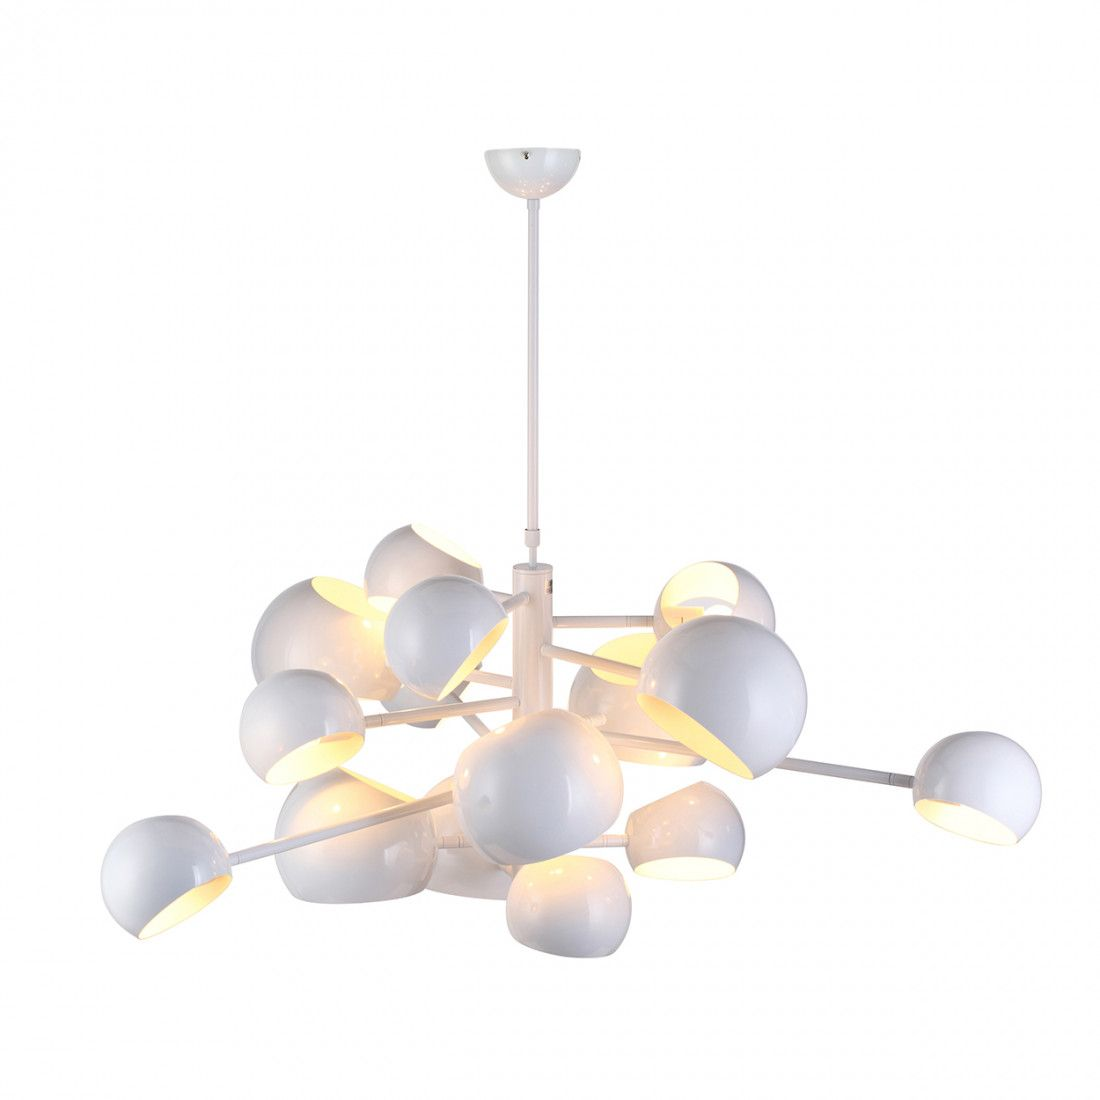 Kobra burst chandelier white chandeliers modern and kitchens kobra burst chandelier white arubaitofo Image collections